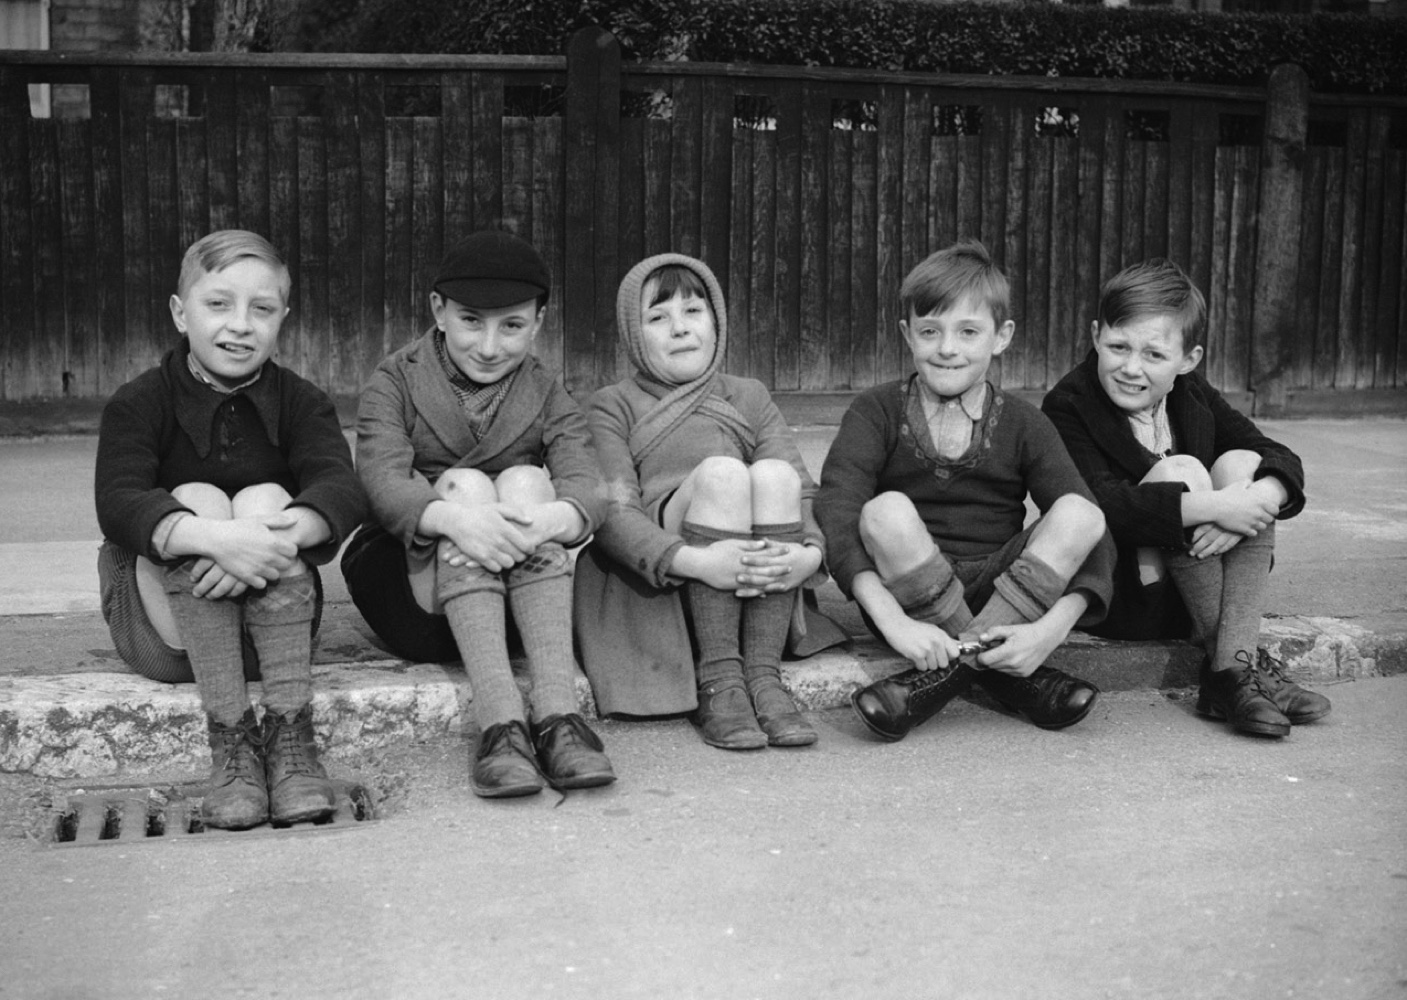 A group of evacuee children during the Second World War. (Fox Photos/Getty Images)